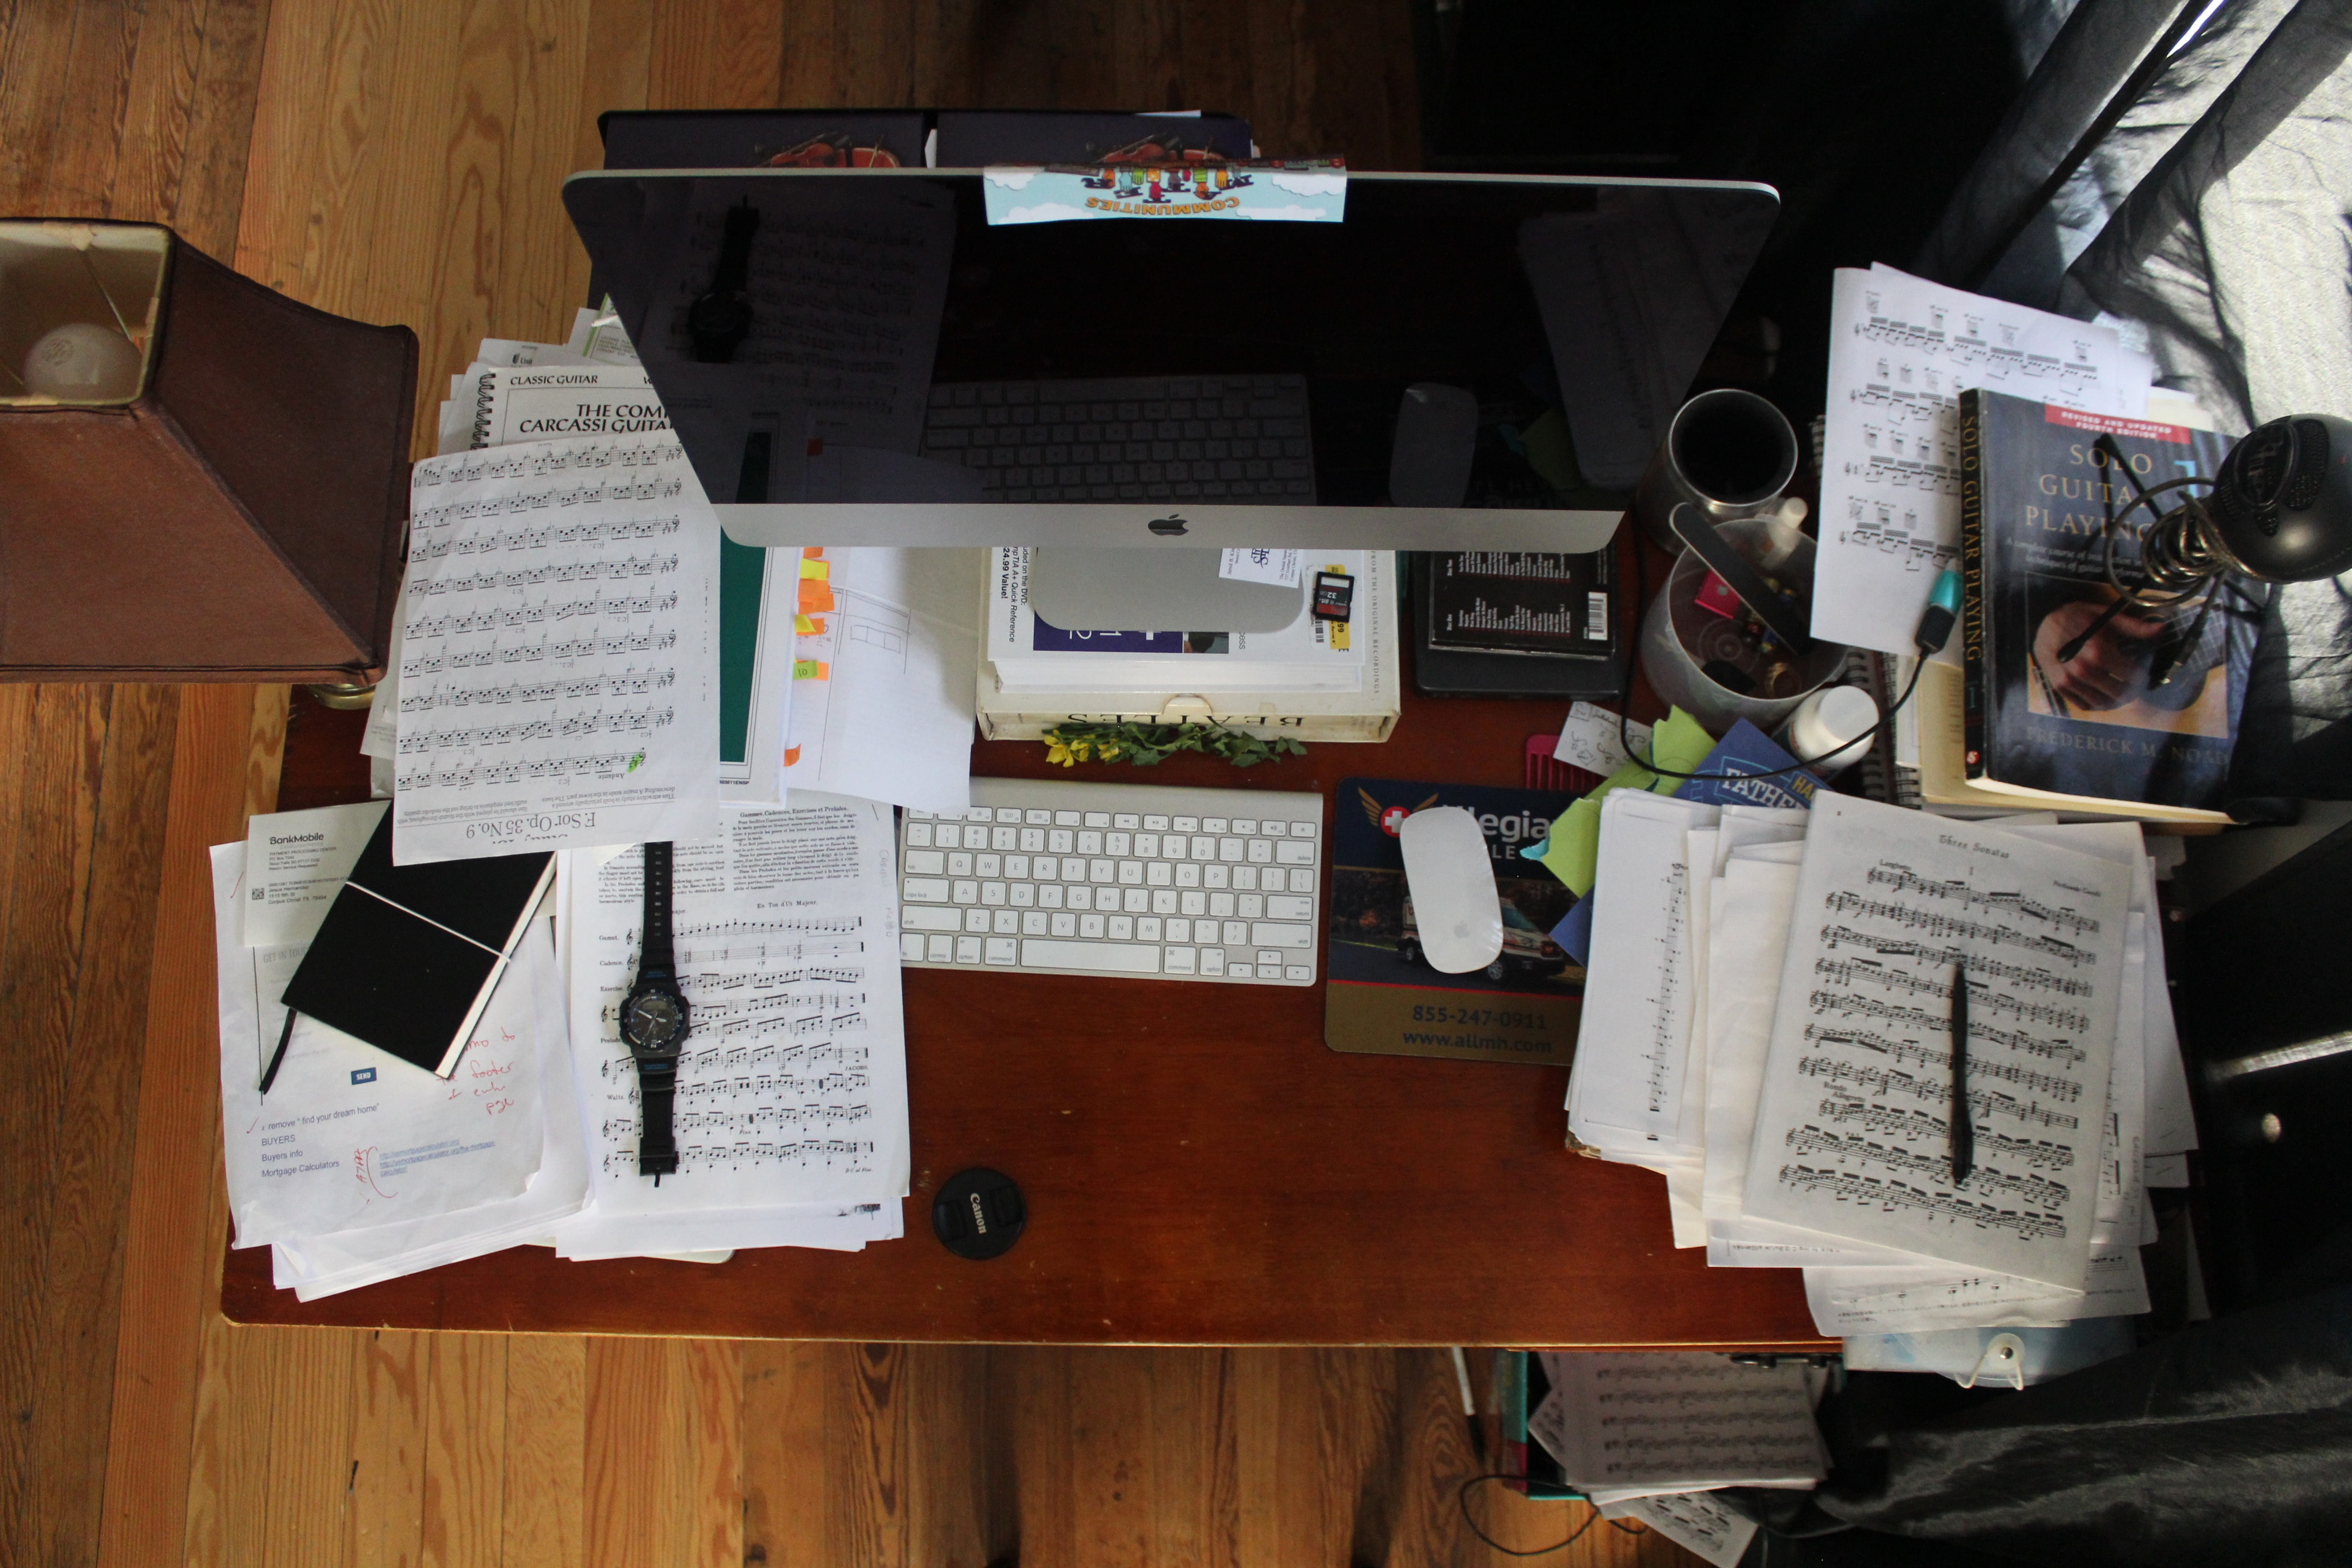 people with ADHD aren't always as organised. A messy office